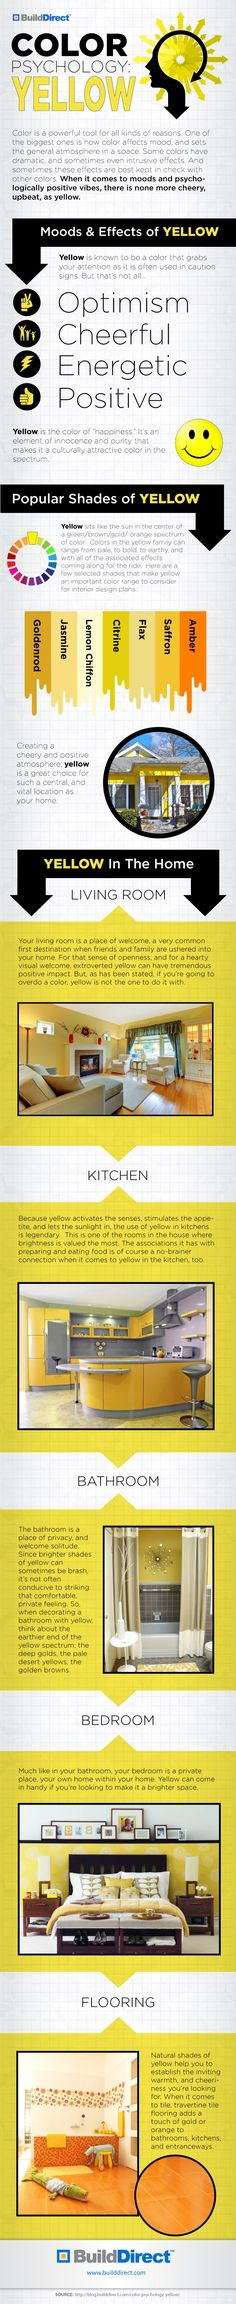 Psychology of the color yellow in your home decorating